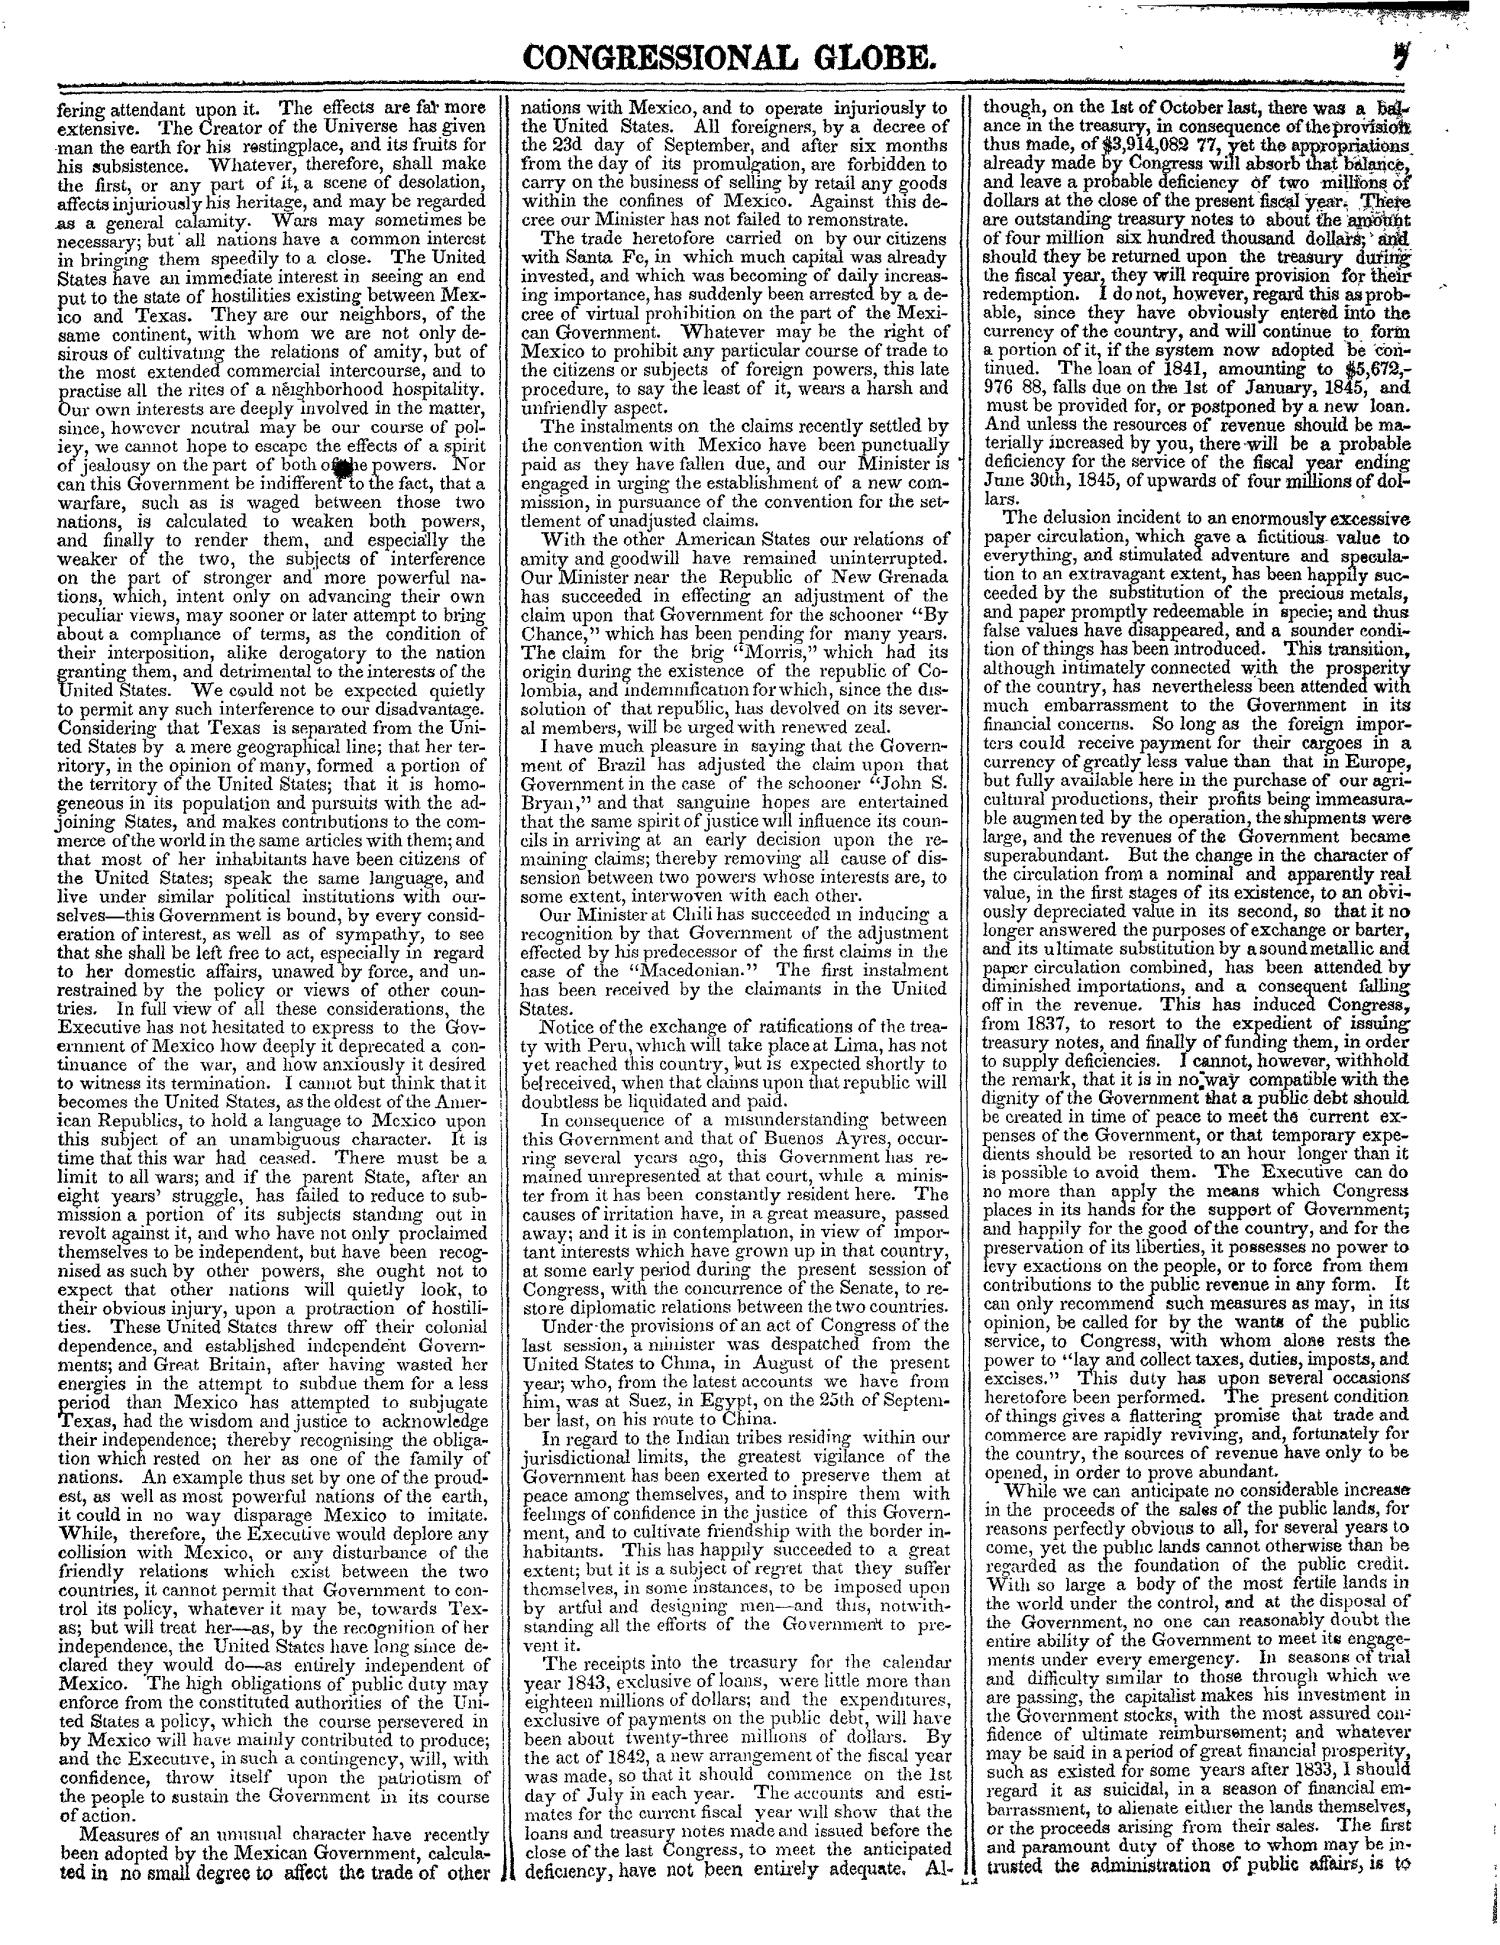 The Congressional Globe, Volume 13, Part 1: Twenty-Eighth Congress, First Session                                                                                                      7